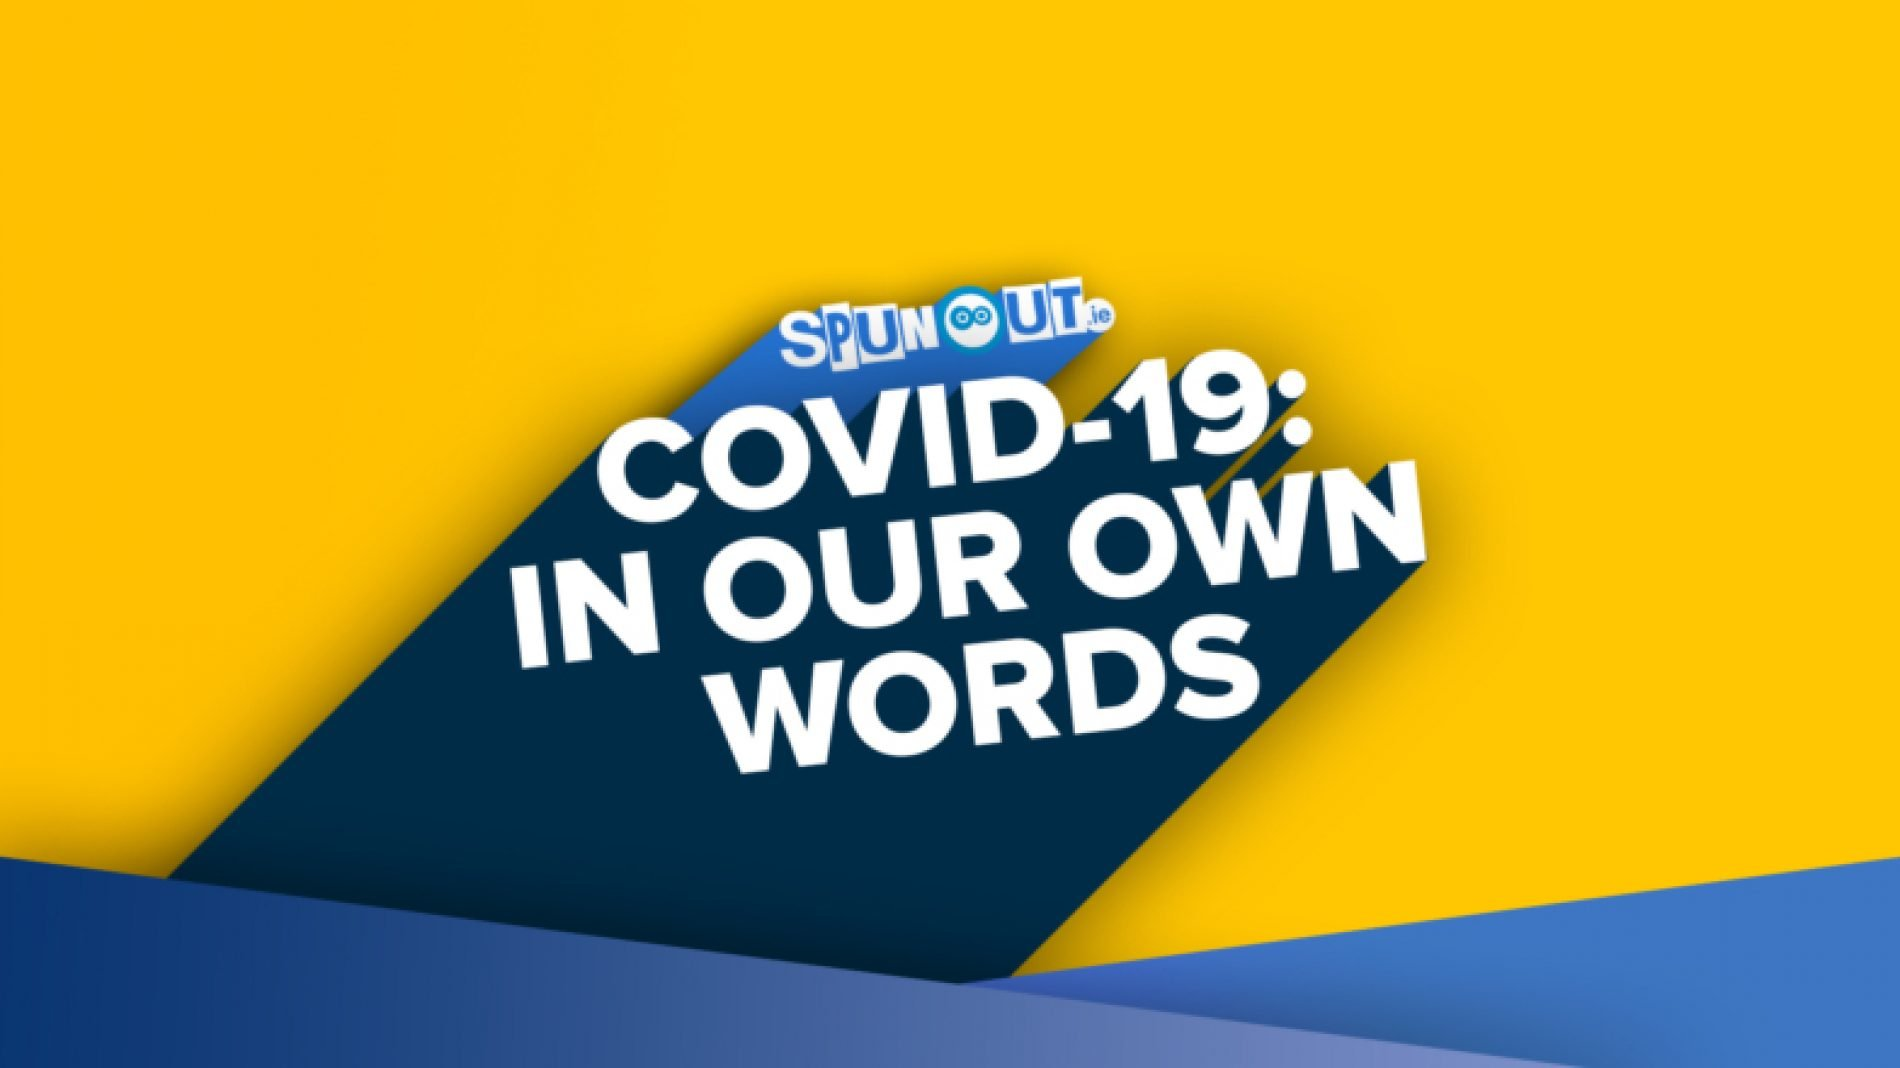 COVID-19-In-Our-Own-Words-qAGs6n